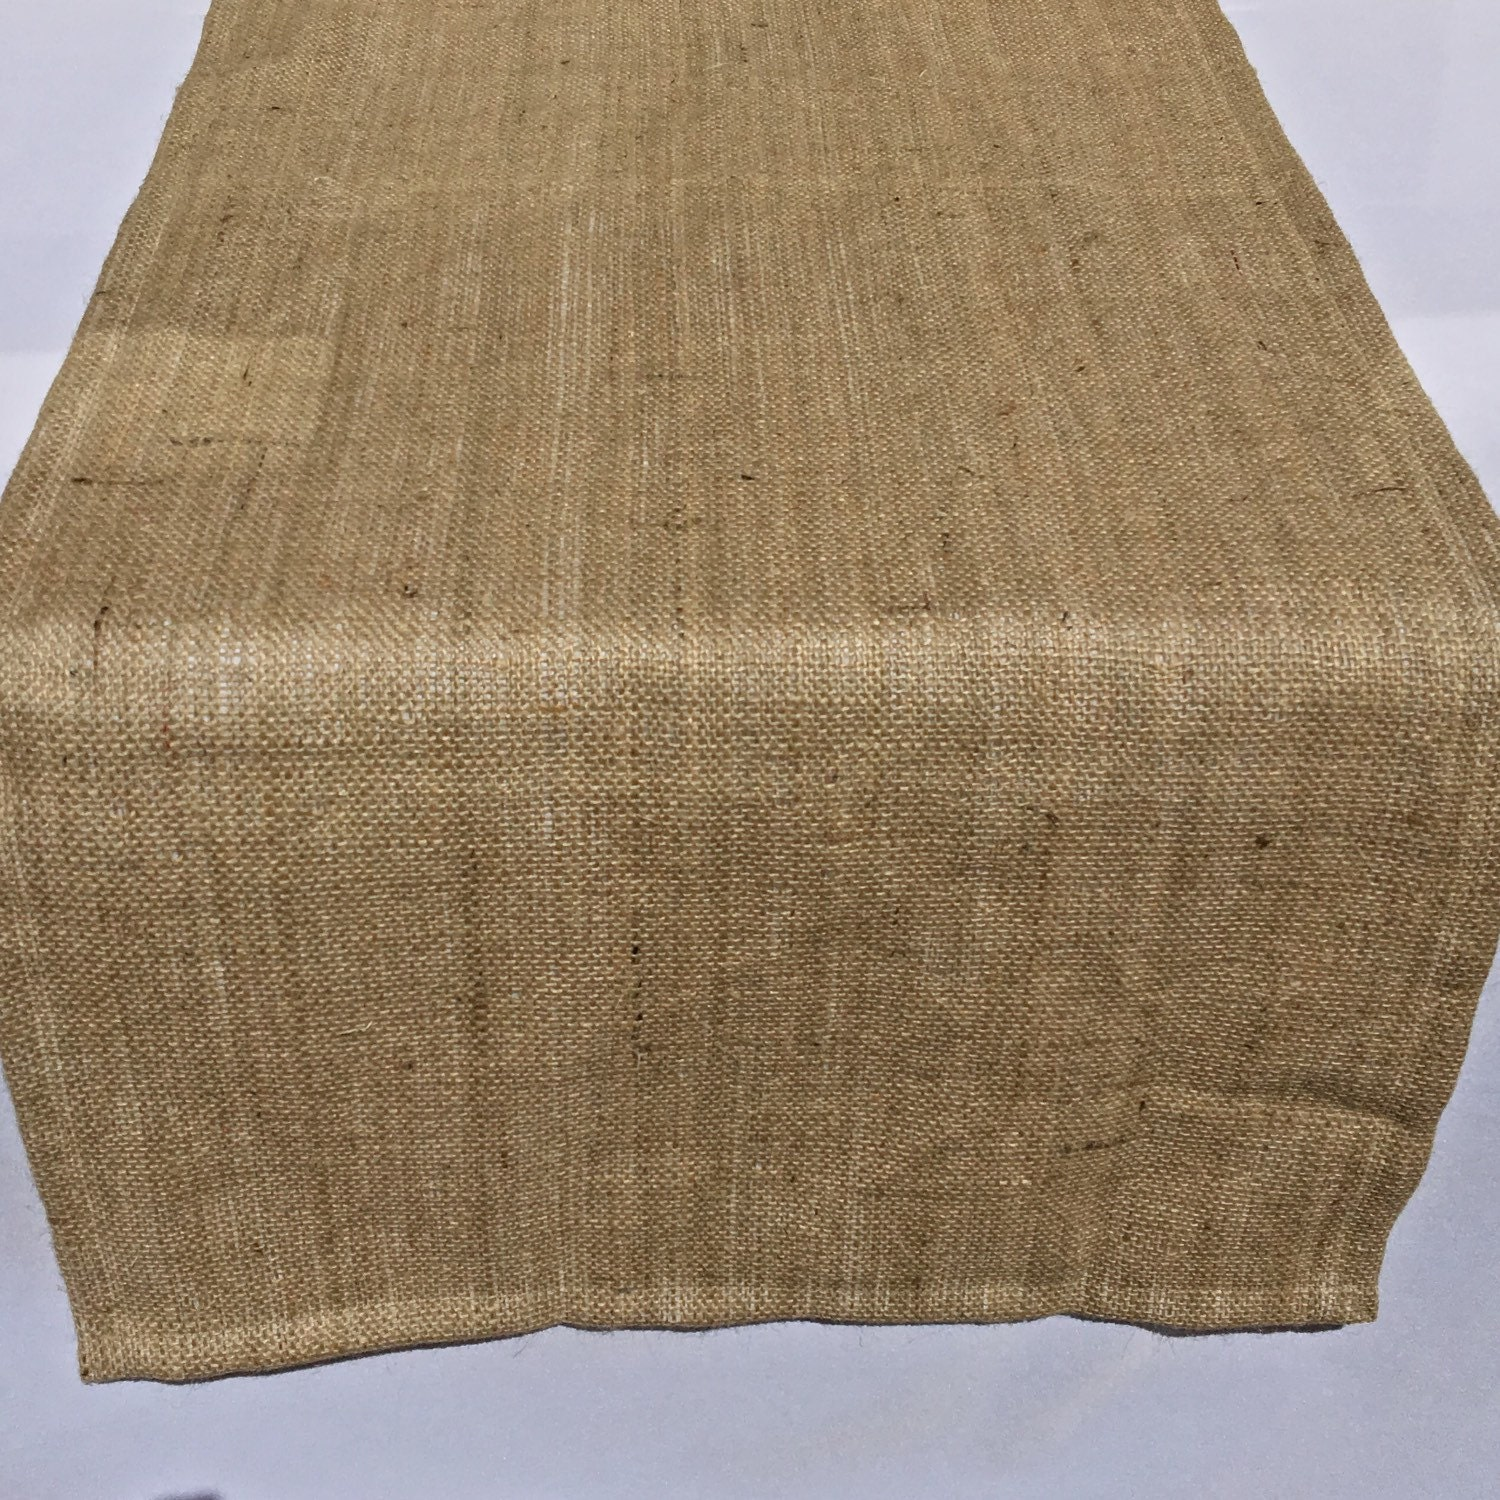 Burlap Table Runner Extra Wide Runner Wedding Shower